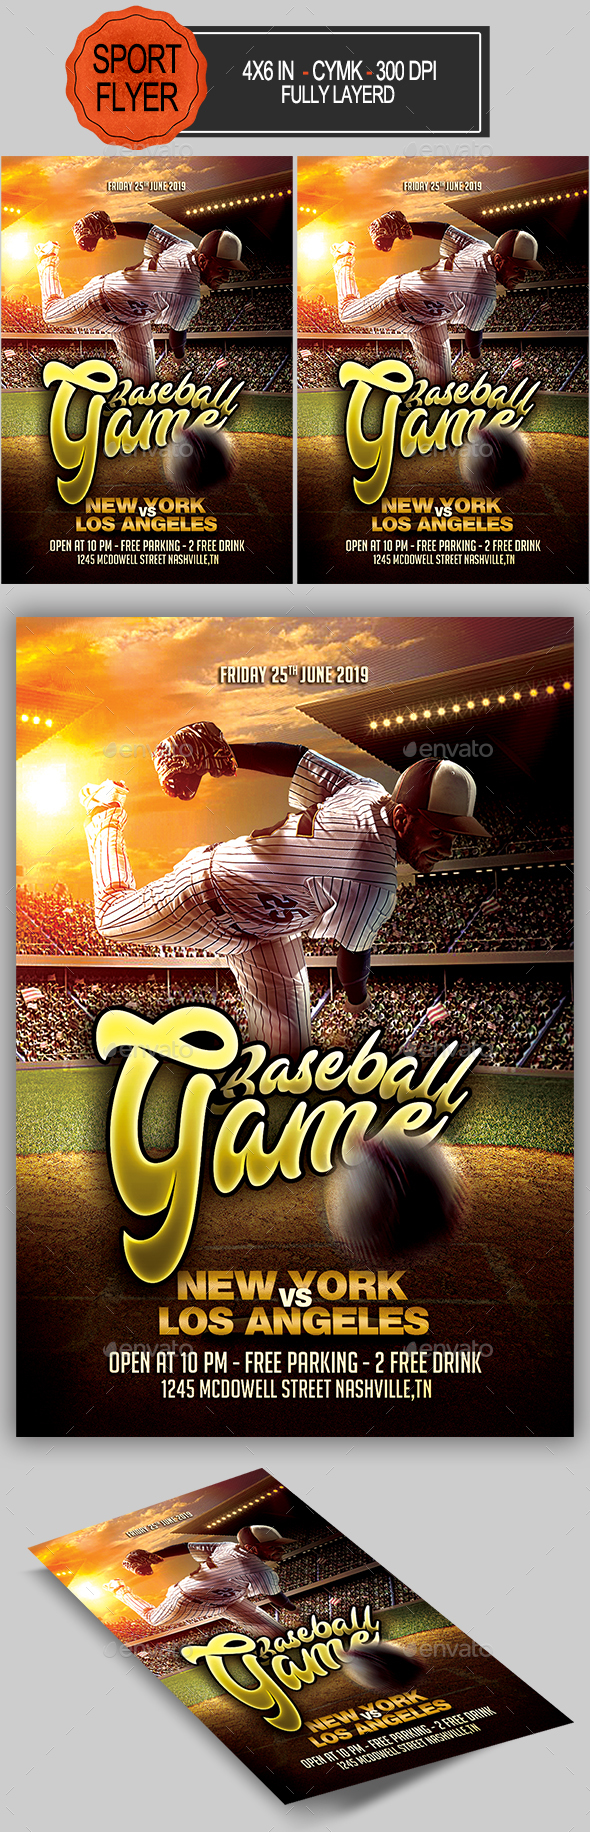 Baseball Flyer by seasonOFTHEflowers | GraphicRiver